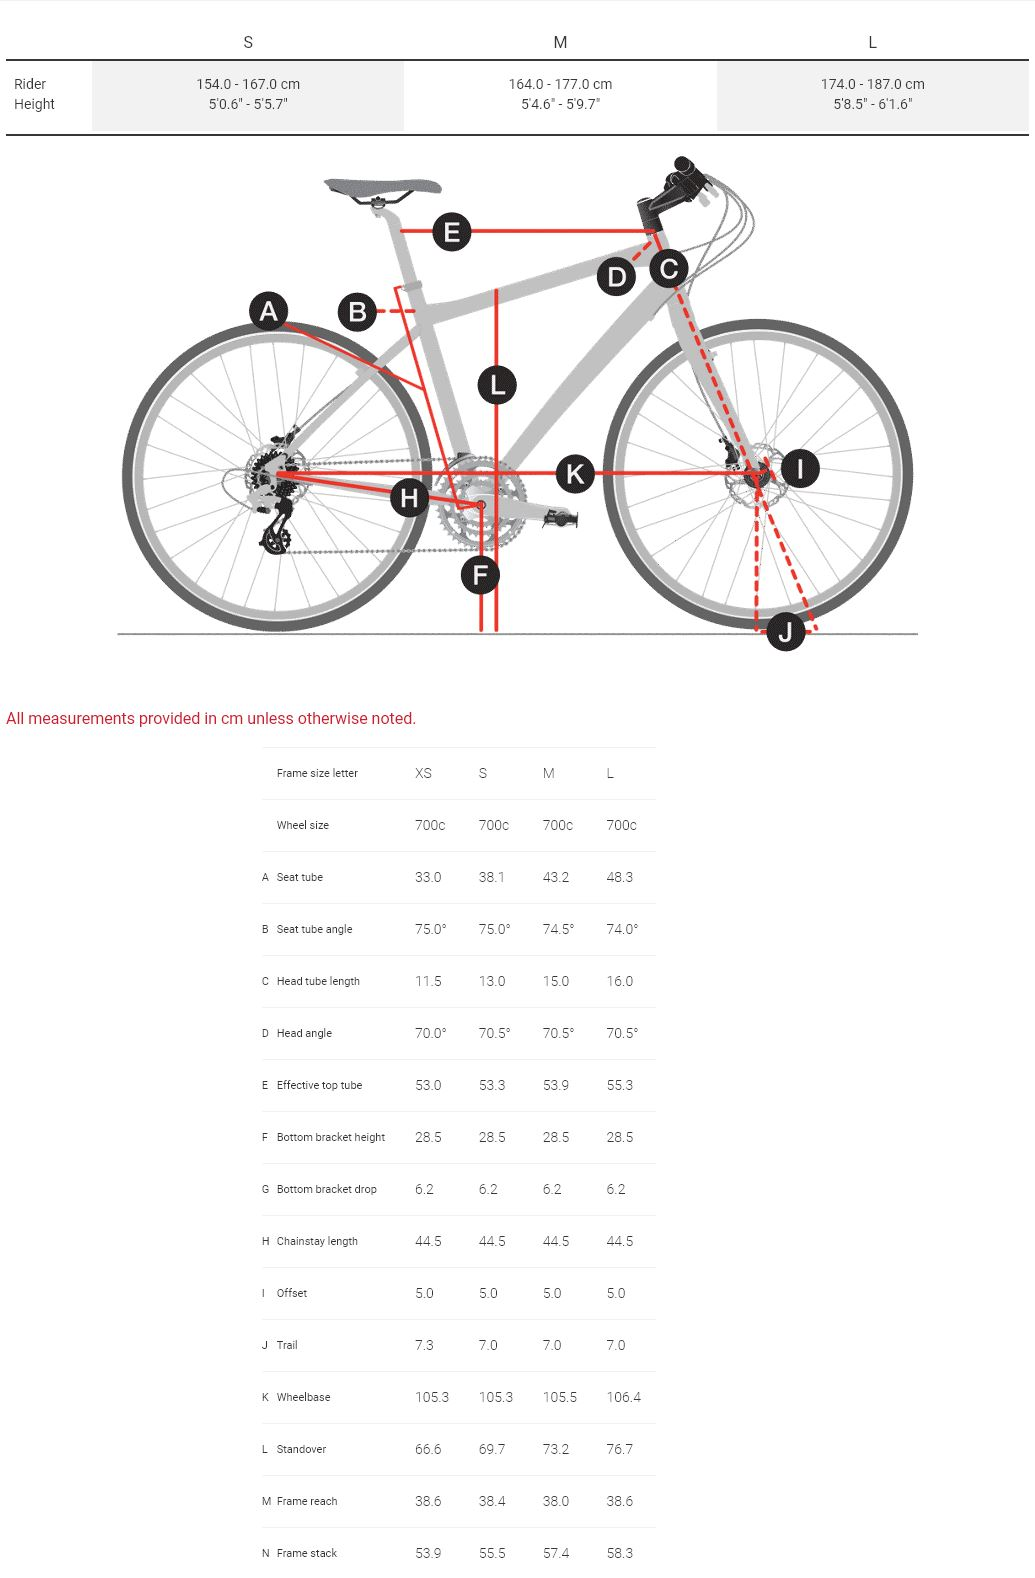 Trek FX Disc Women's Geometry Chart